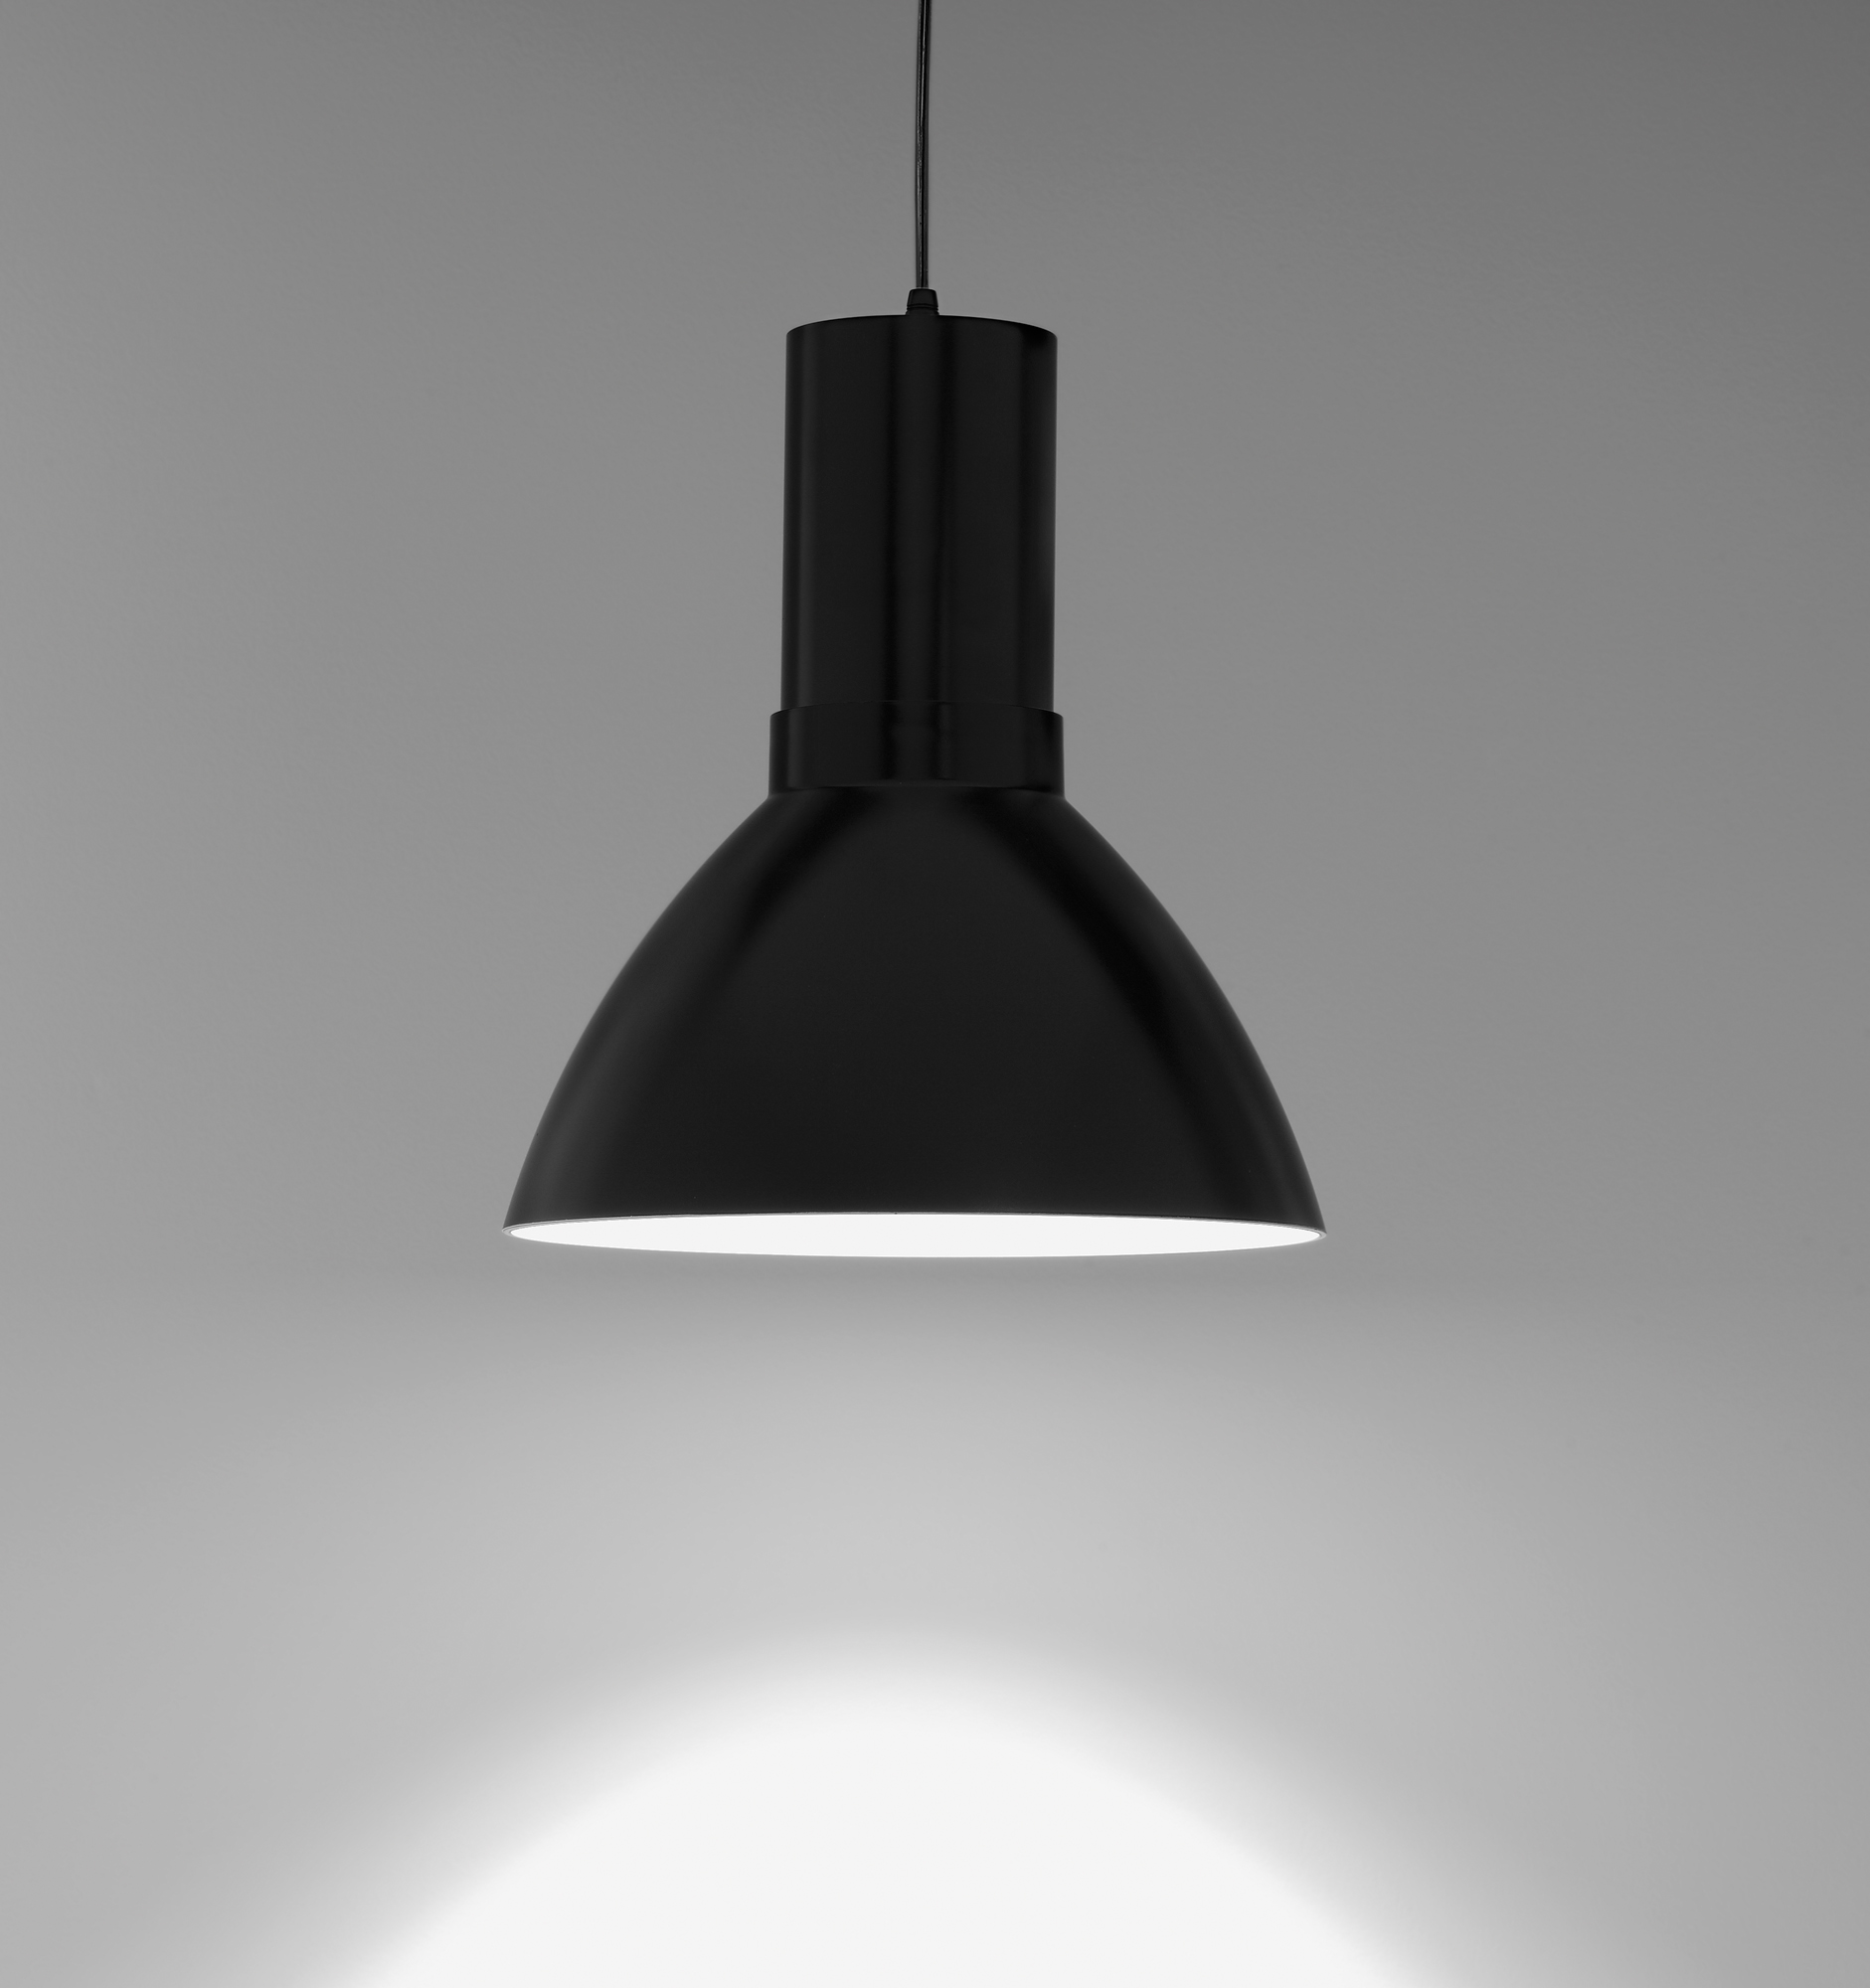 Ceiling and suspension light - DL034